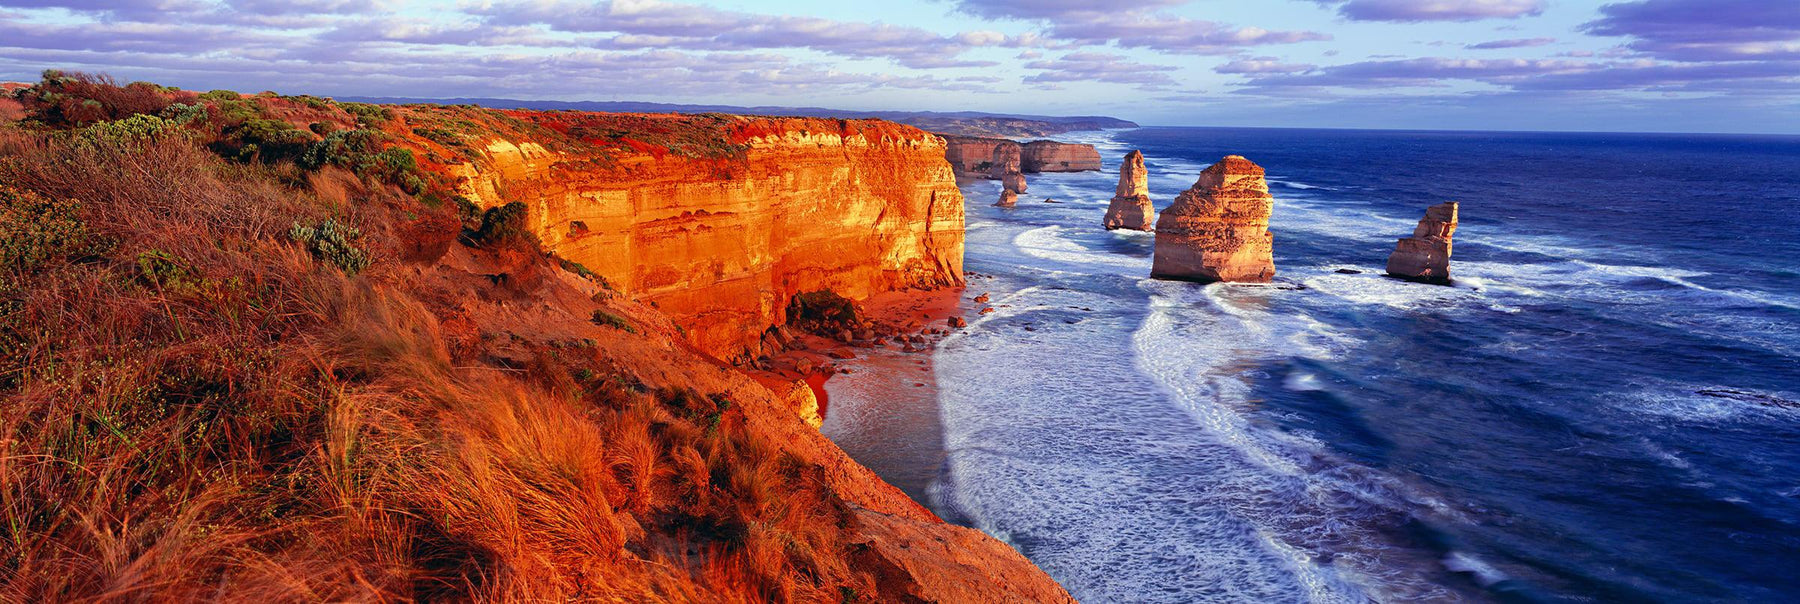 Twelve Apostles rock formations along the coast of Marine National Park Australia